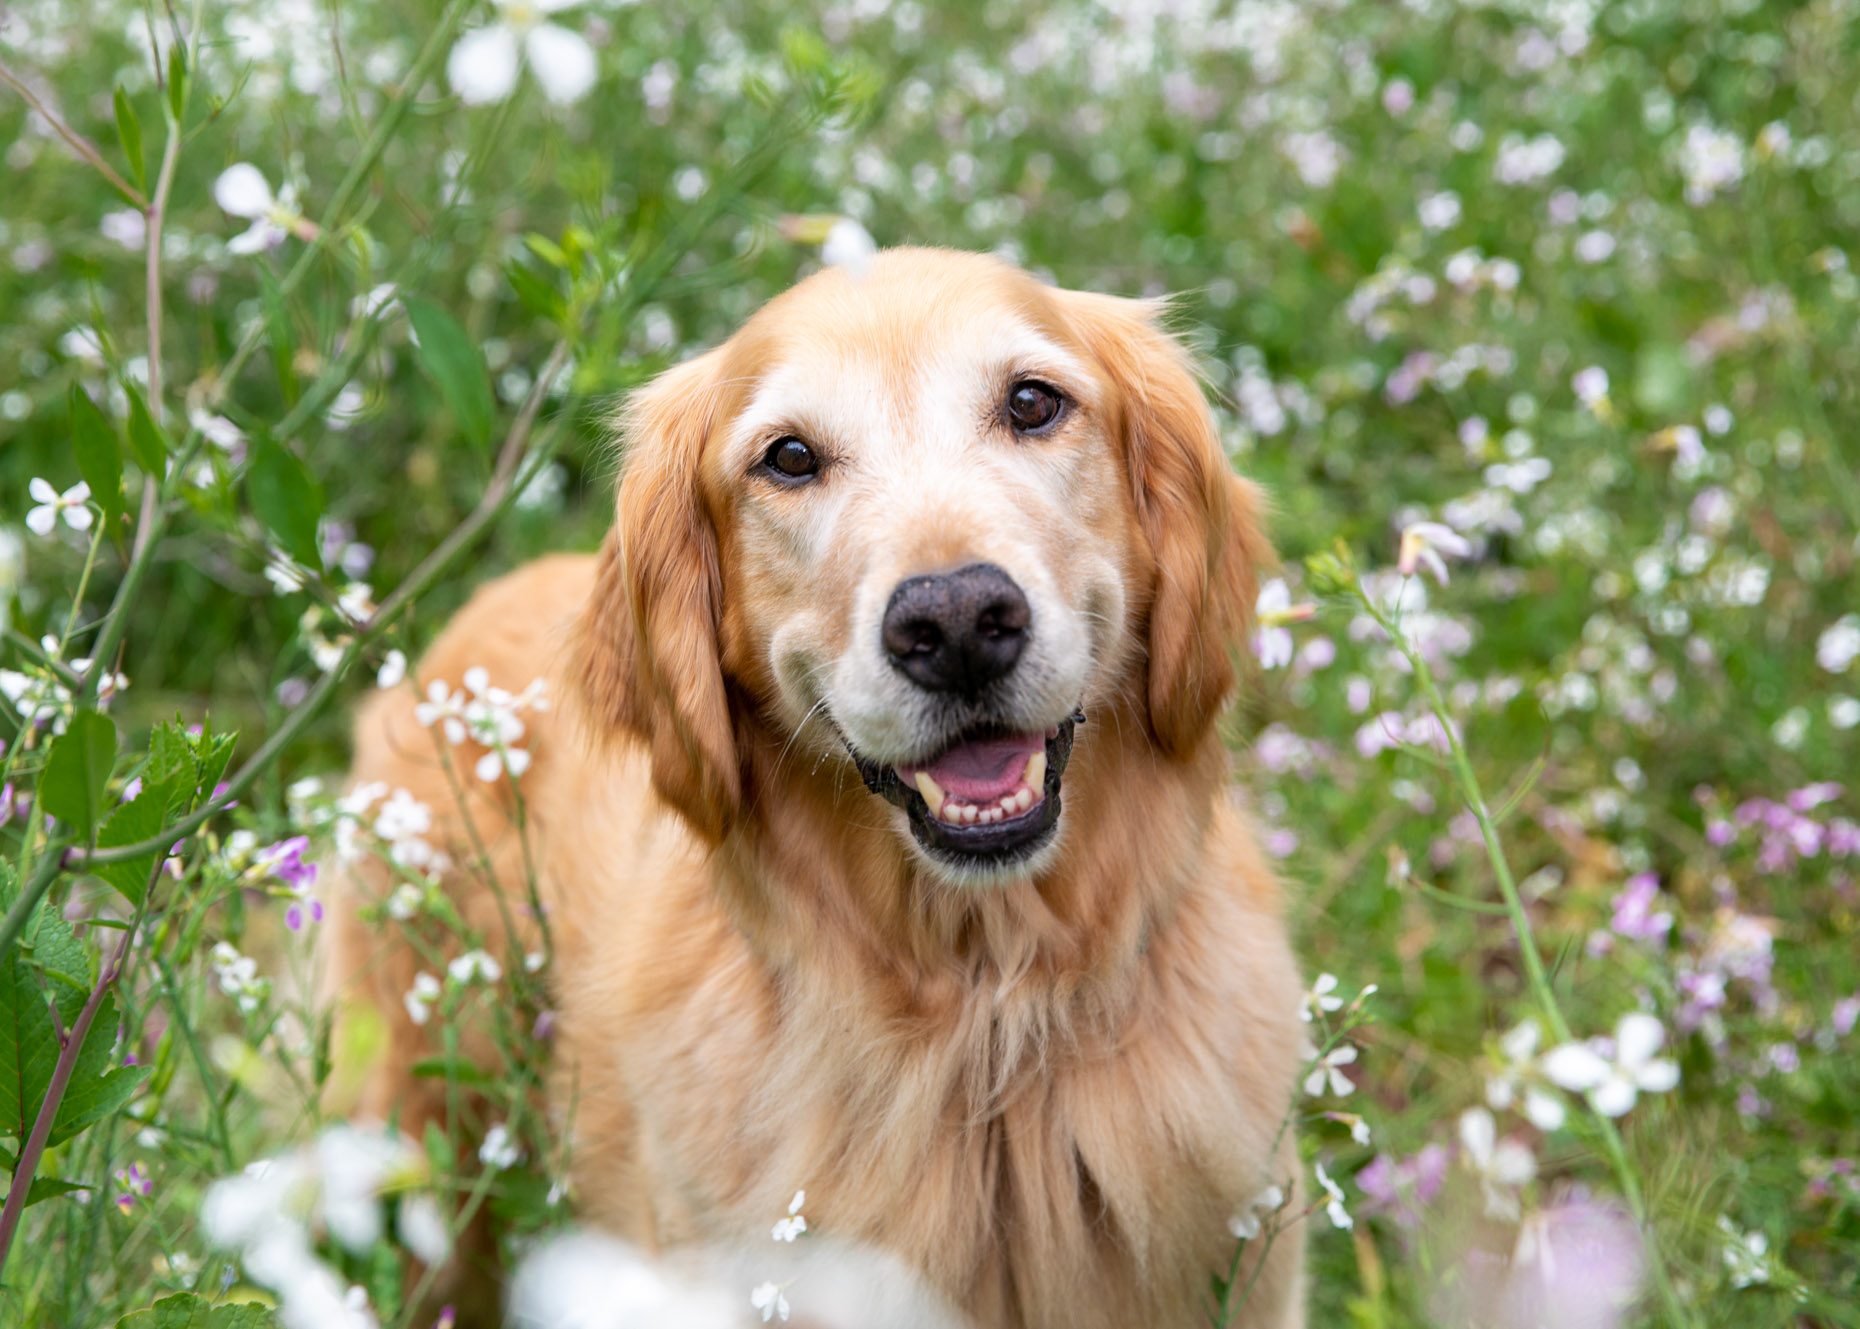 Dog and Pet Photography | Retriever in Wildflowers by Mark Rogers